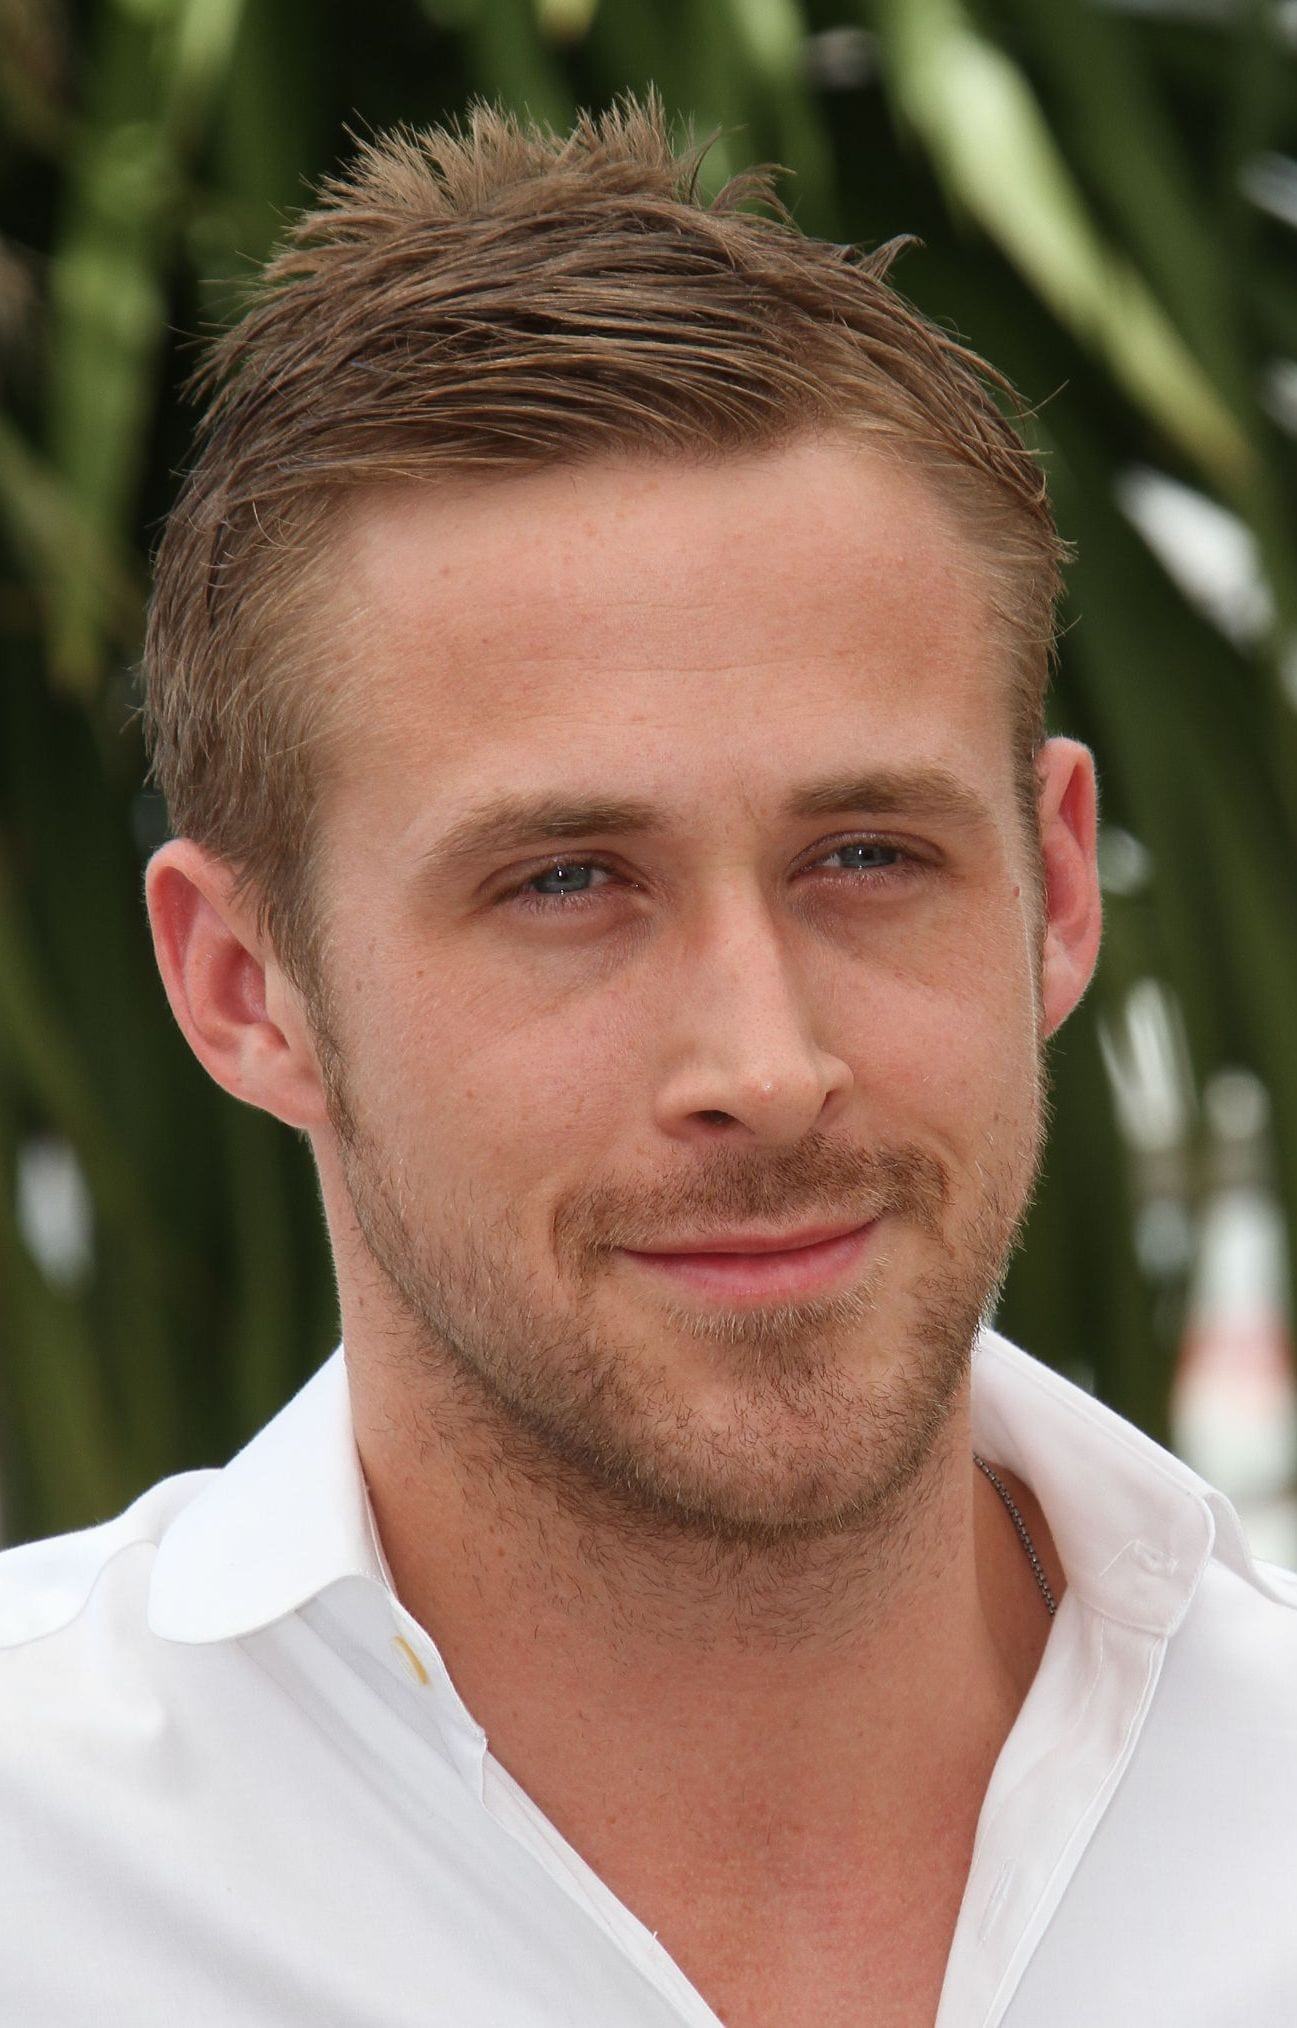 Ryan Gosling Short Combover with Messy Top May 2010